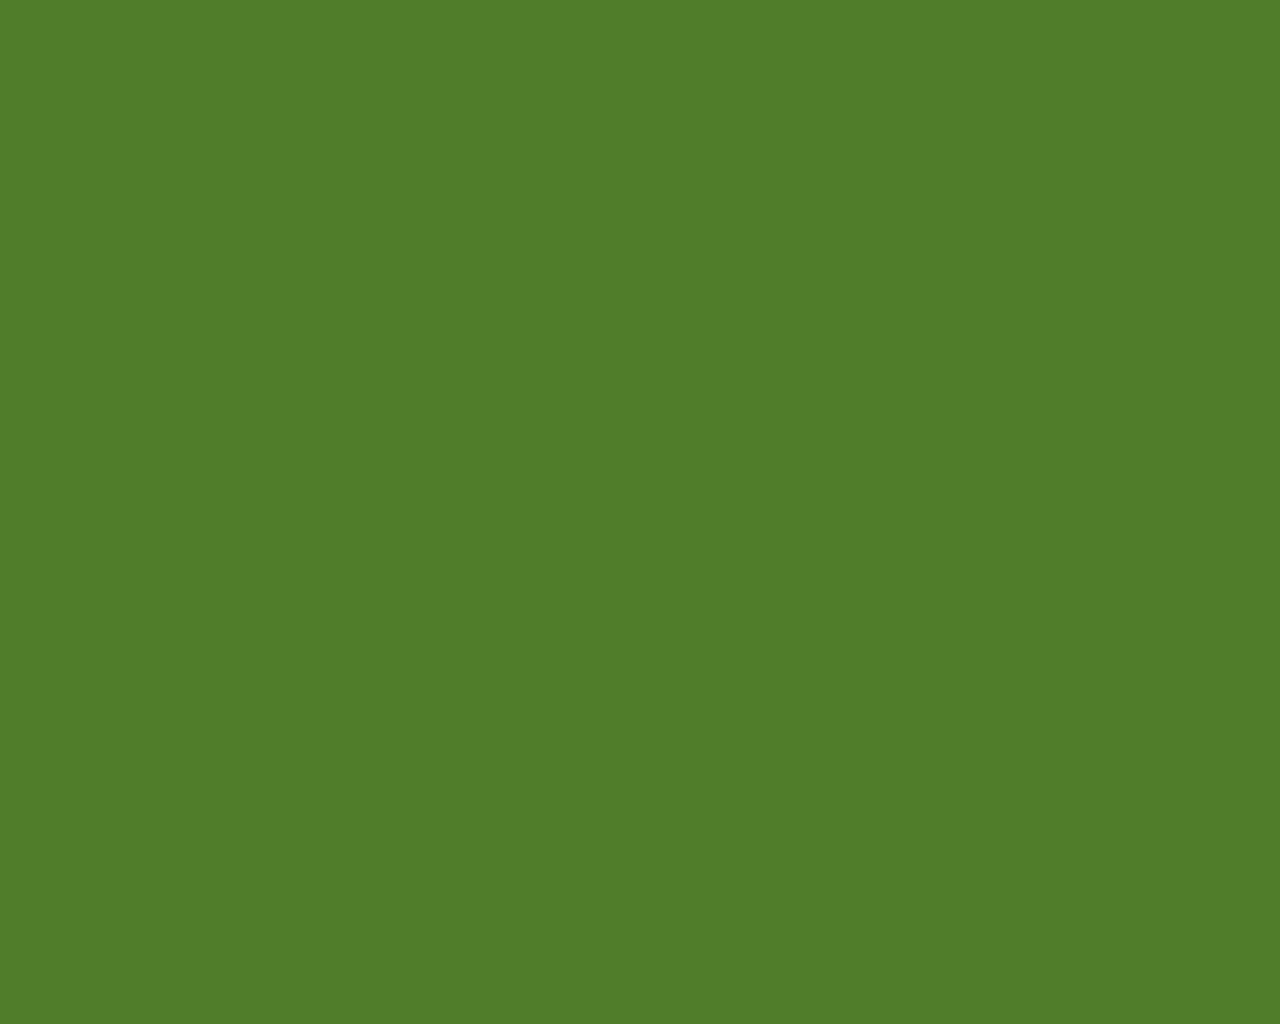 1280x1024 Sap Green Solid Color Background